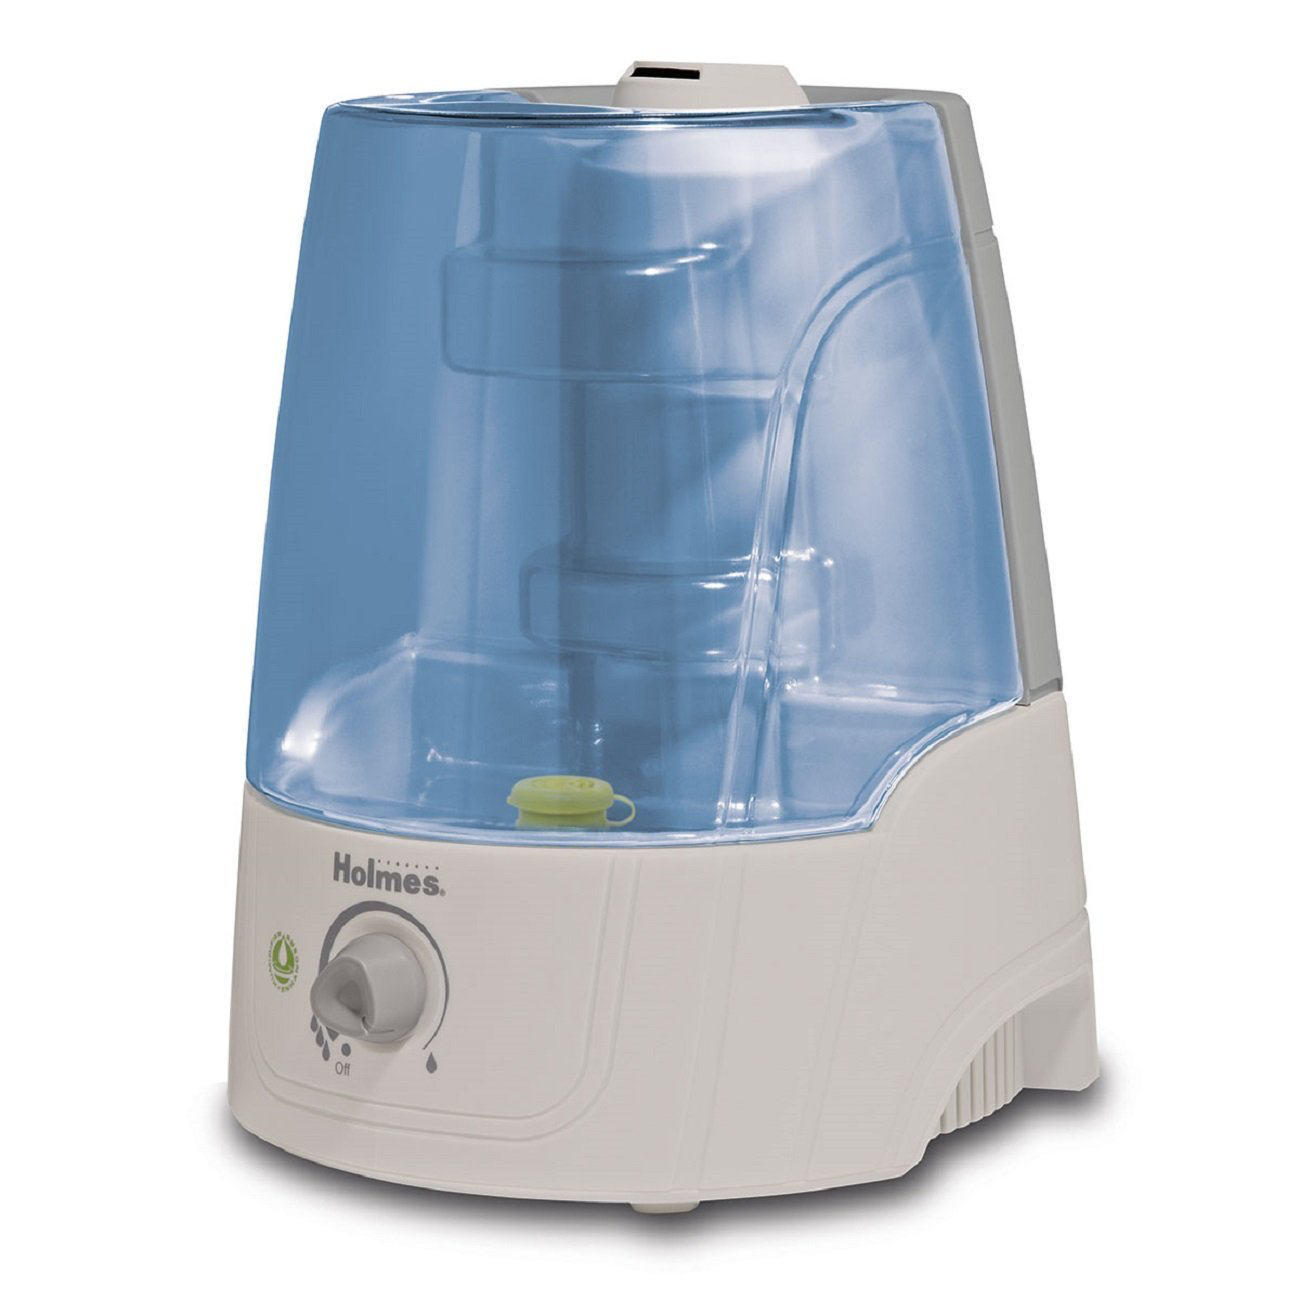 image 23 5 Best Humidifiers 2021 - Best Humidifiers for Home and Office